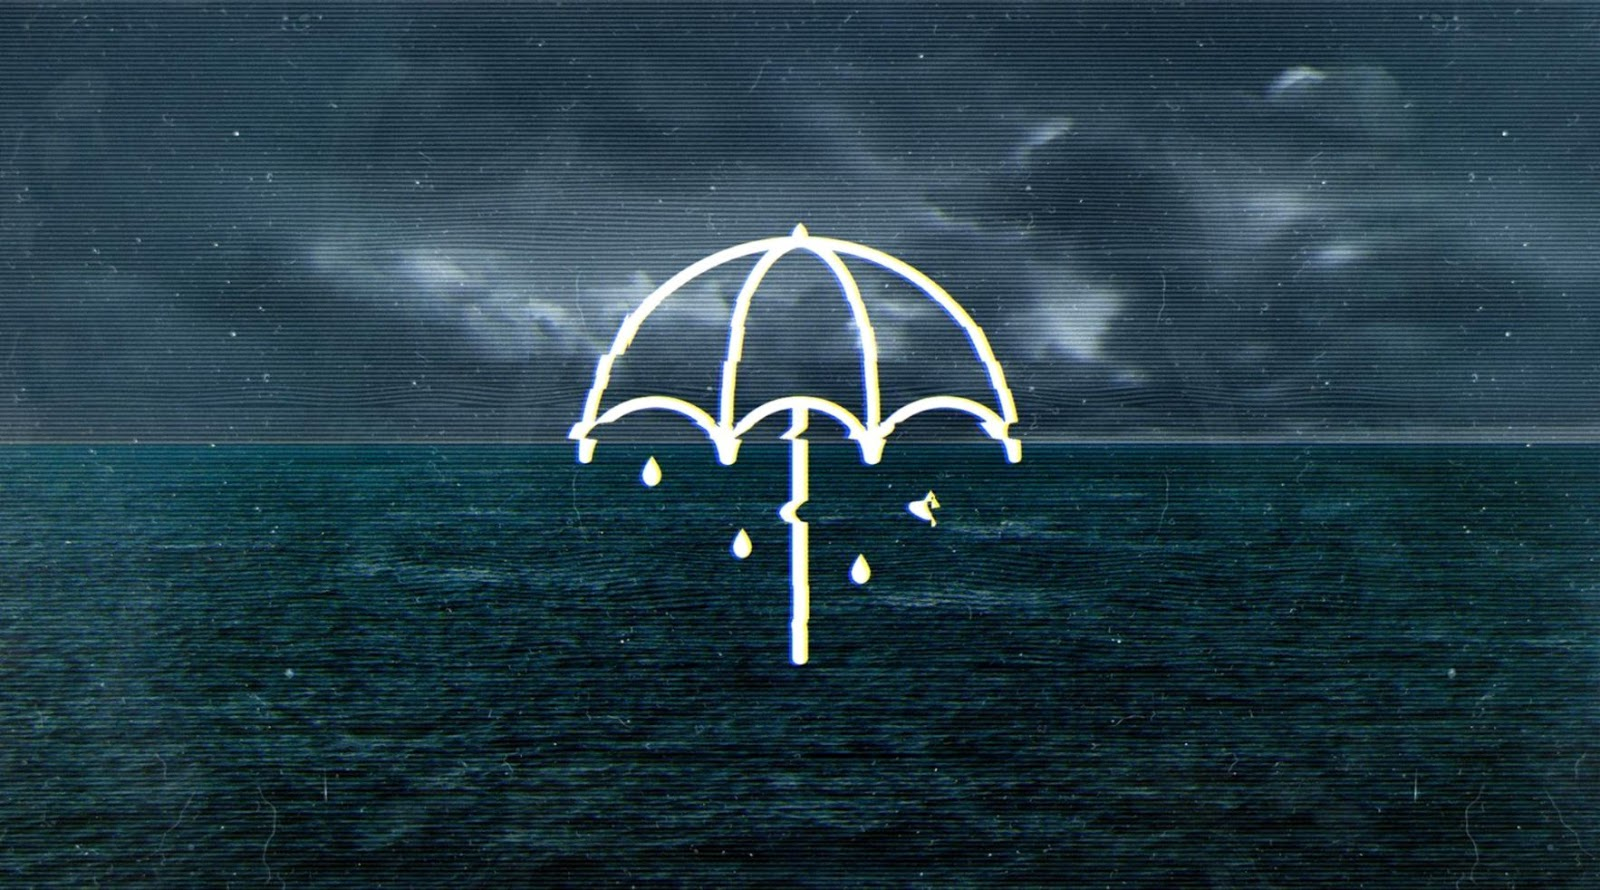 Bmth Wallpaper Tumblr Pc Hd Wallpaper Website • - Bring Me The Horizon Background , HD Wallpaper & Backgrounds